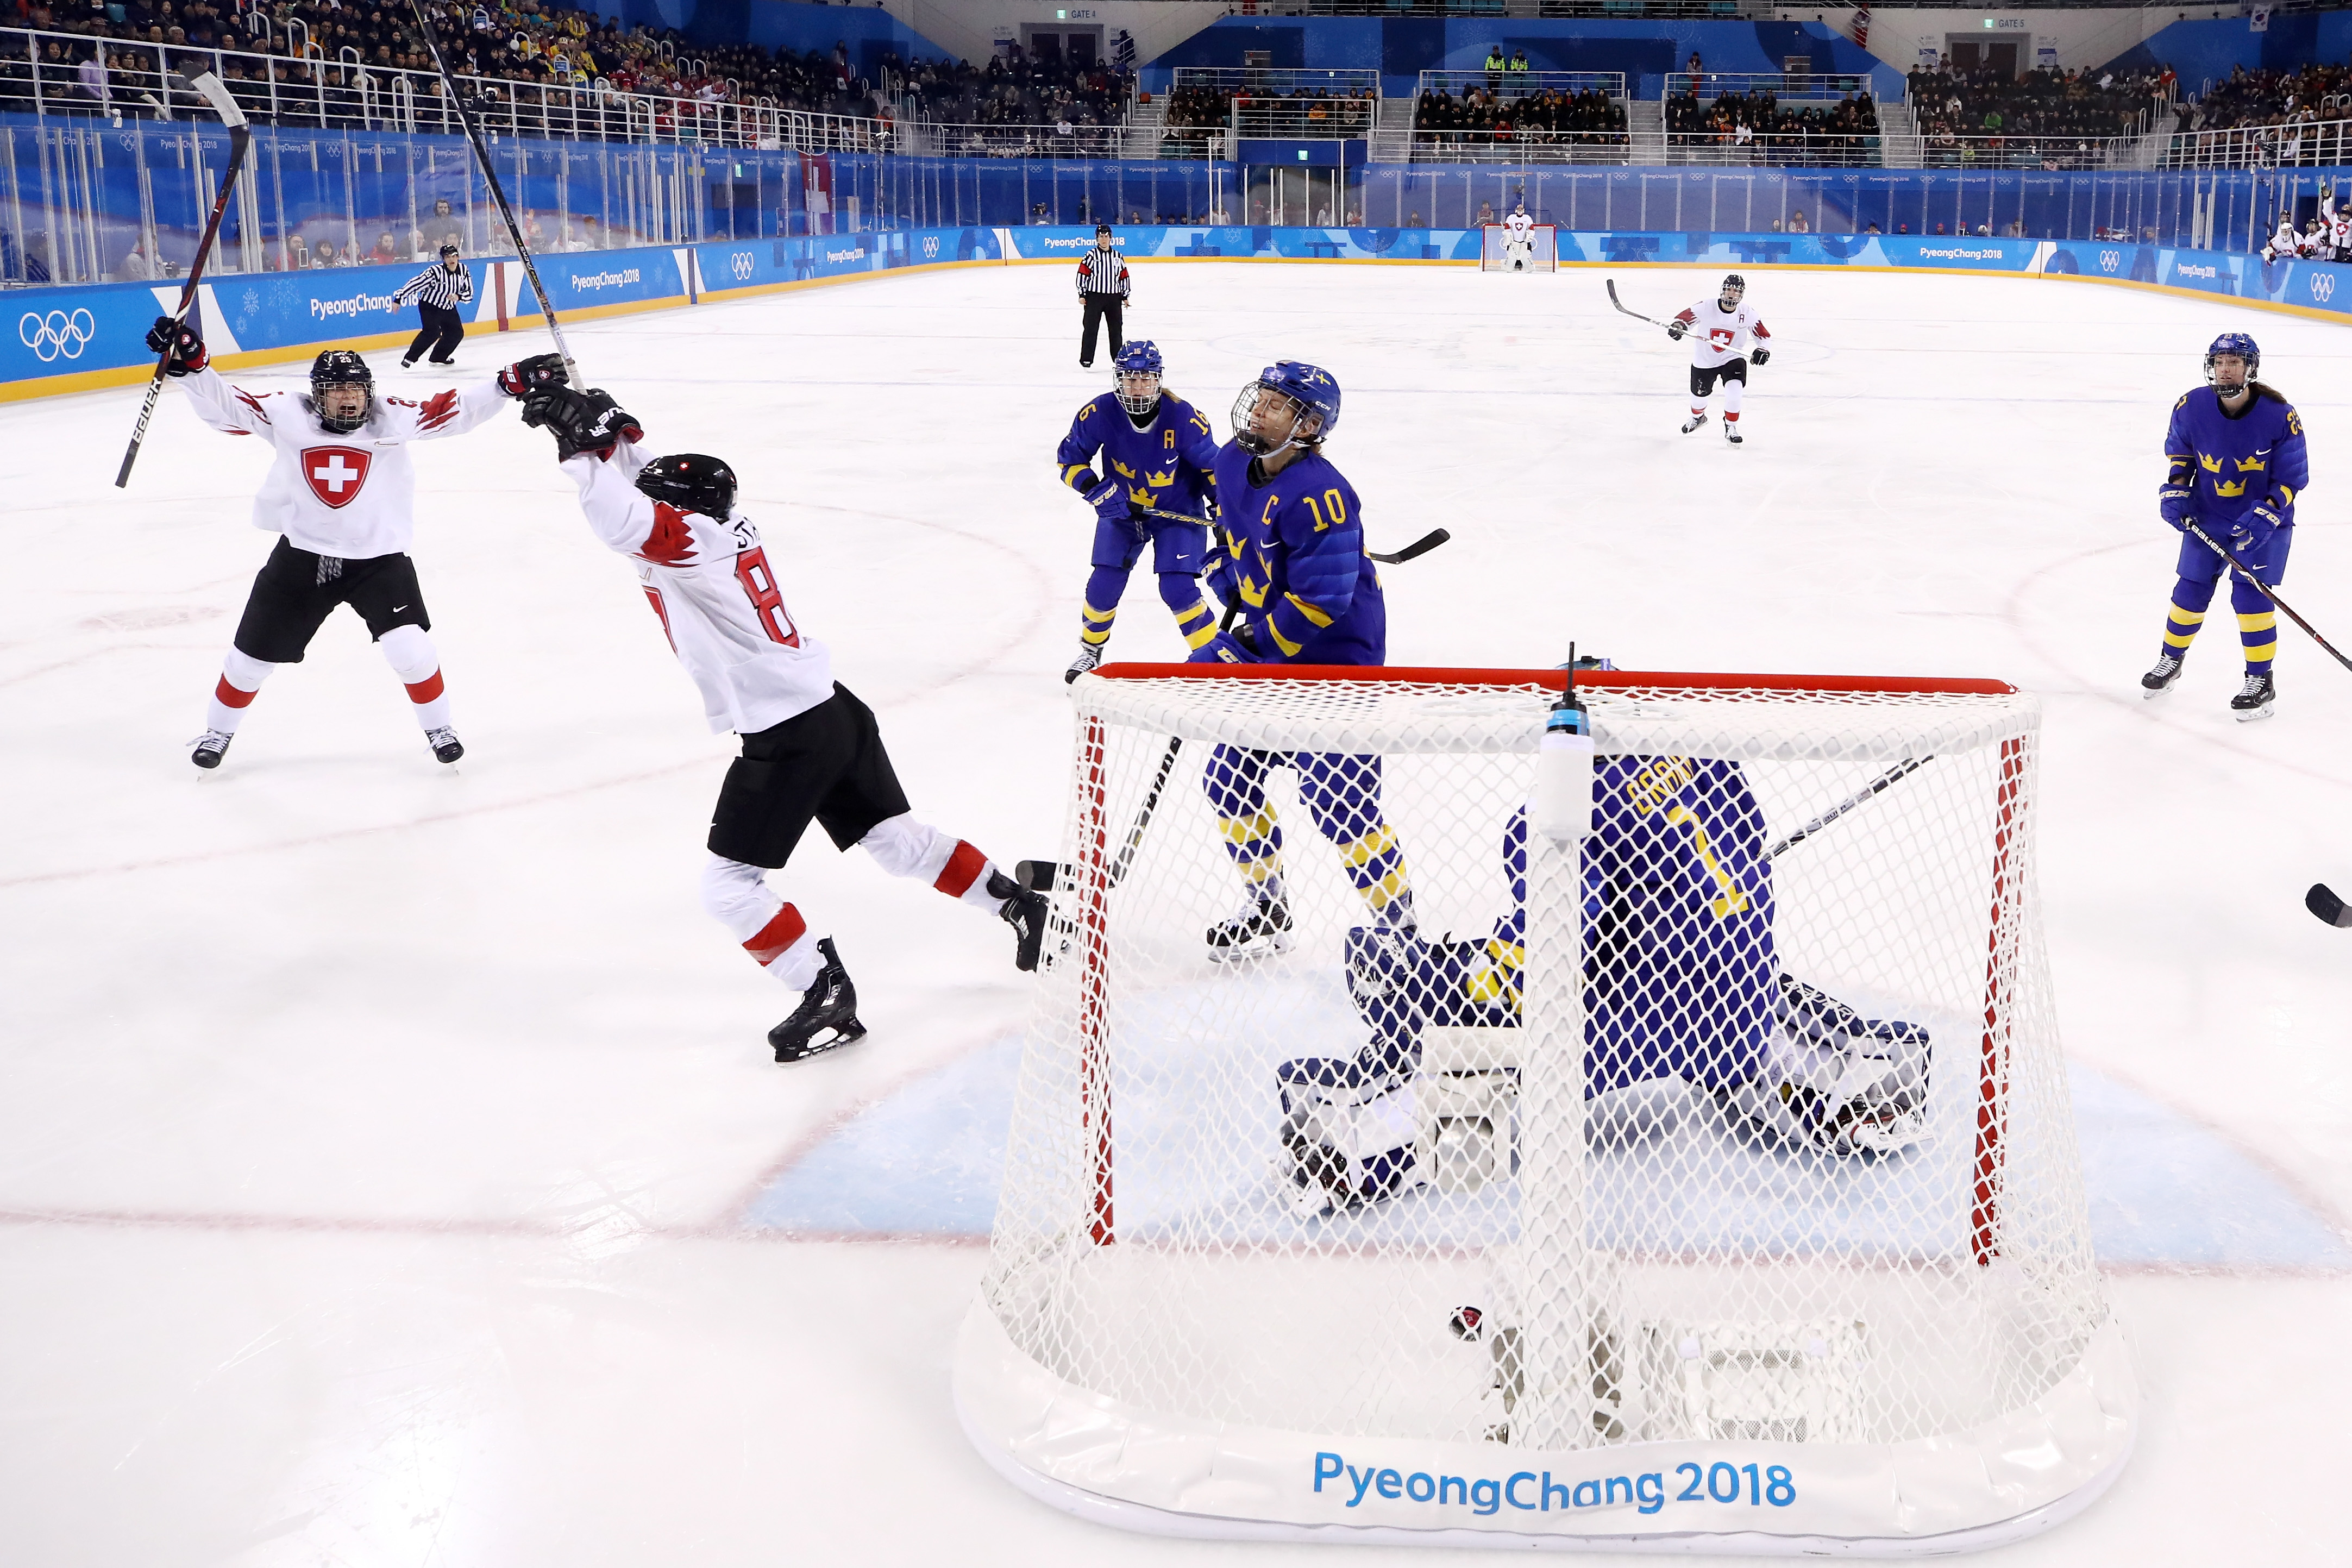 Phoebe Staenz #88 of Switzerland reacts after scoring a goal against Sweden